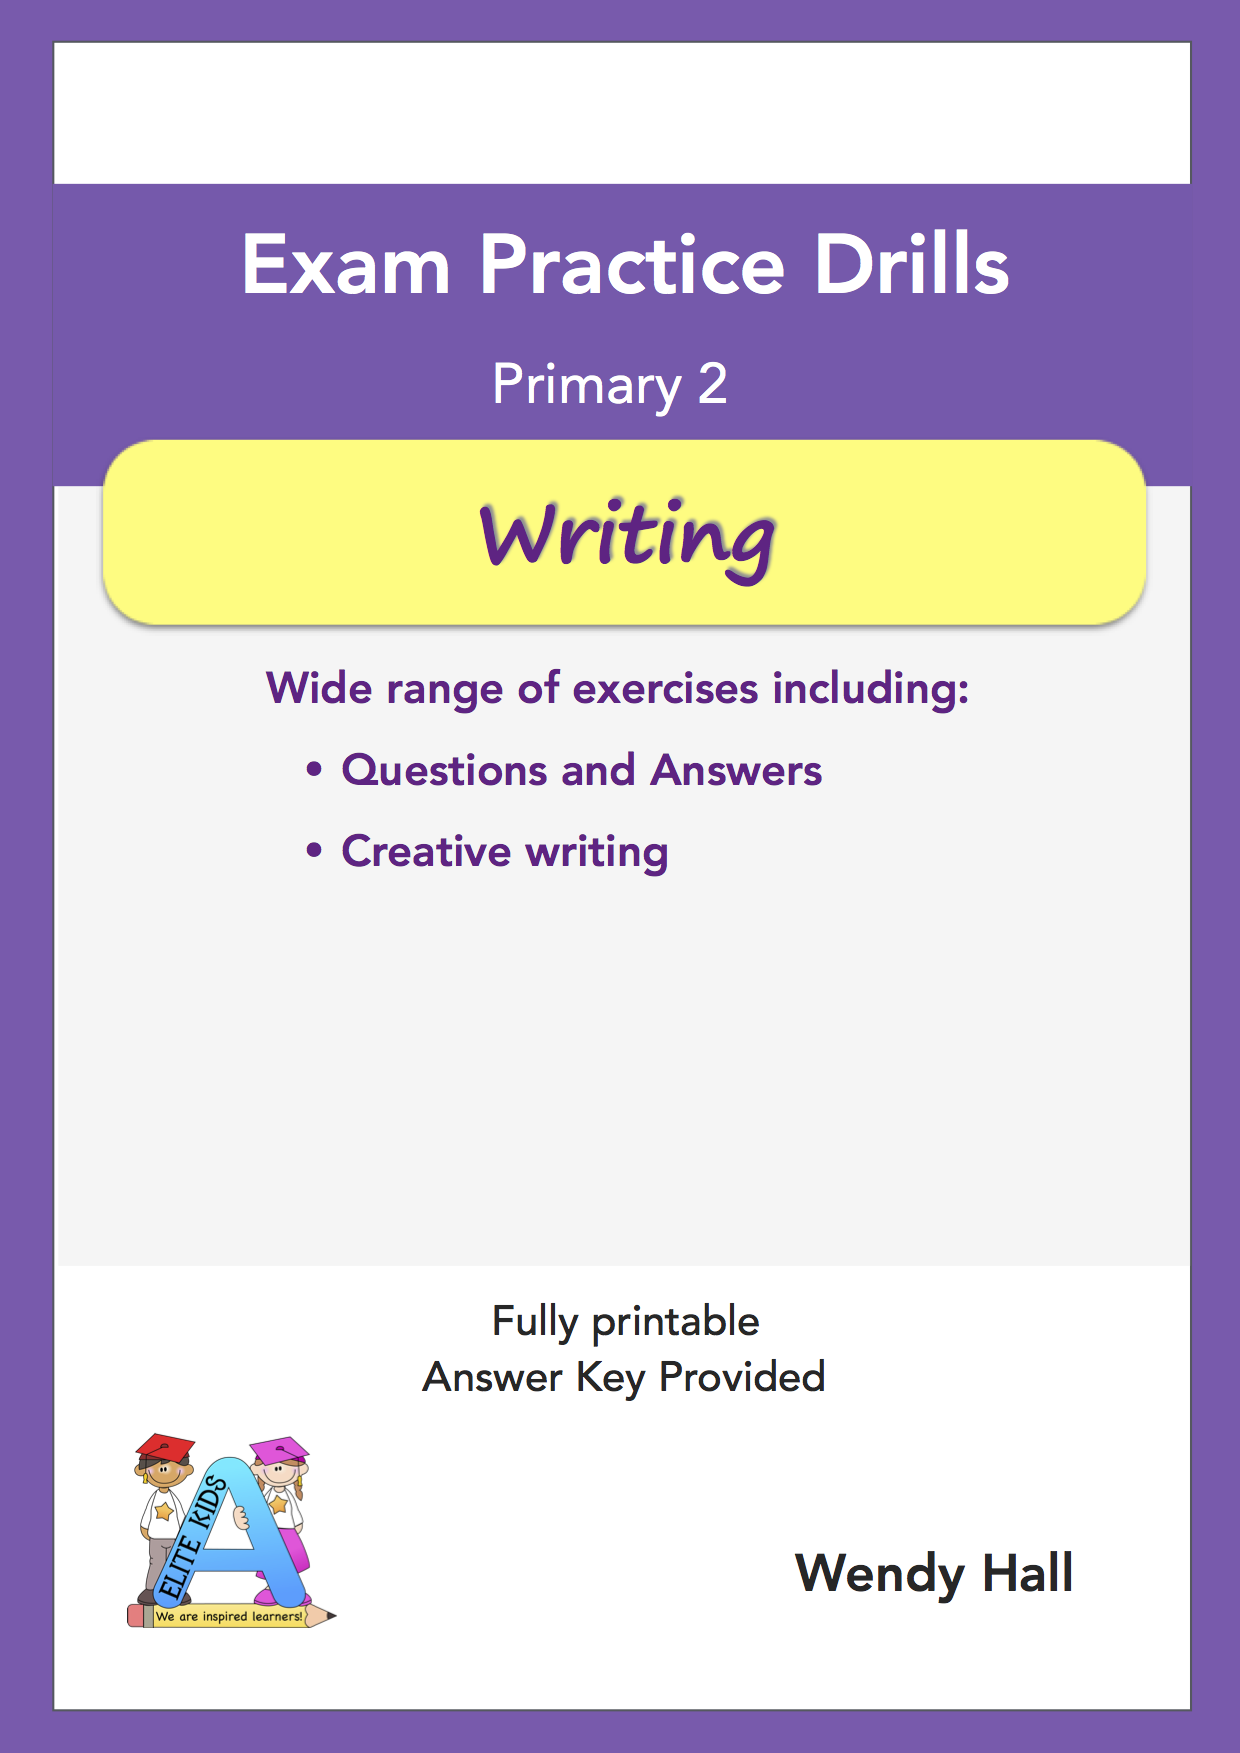 Elite Kids | Exam Practice Drills - Writing - Primary 2